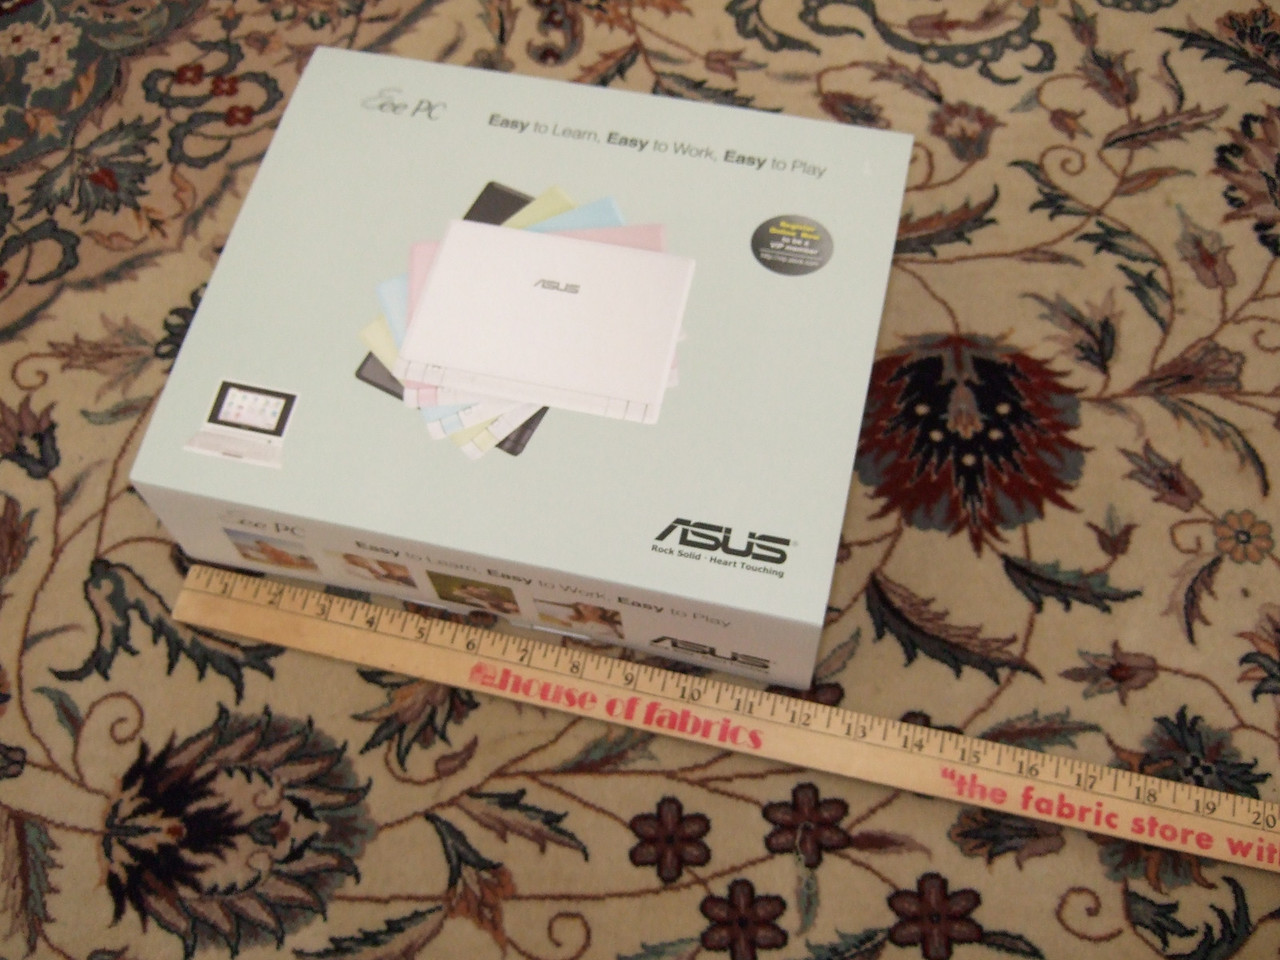 This is the box the EEE PC comes in. The ruler is a yardstick measuring in inches.